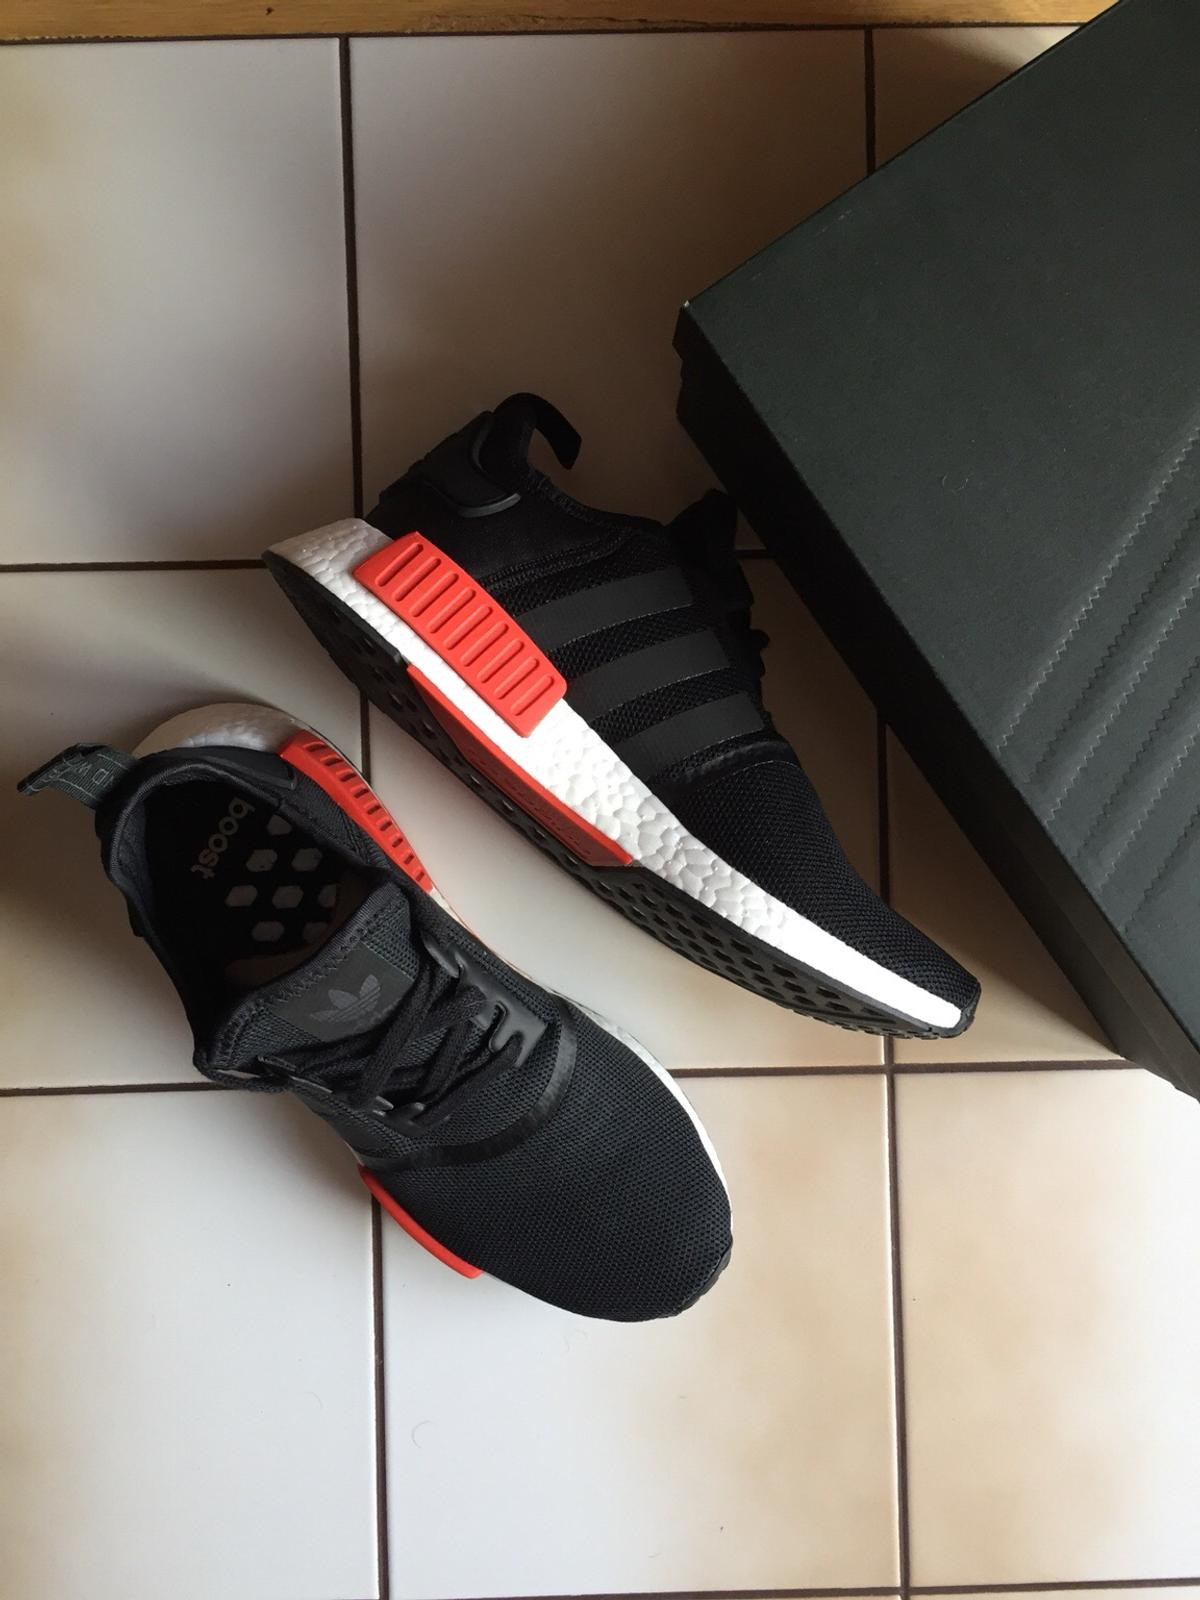 92e1fa368af5a Adidas nmd R1 Schuhe 42 2 3 in 4872 for €50.00 for sale - Shpock